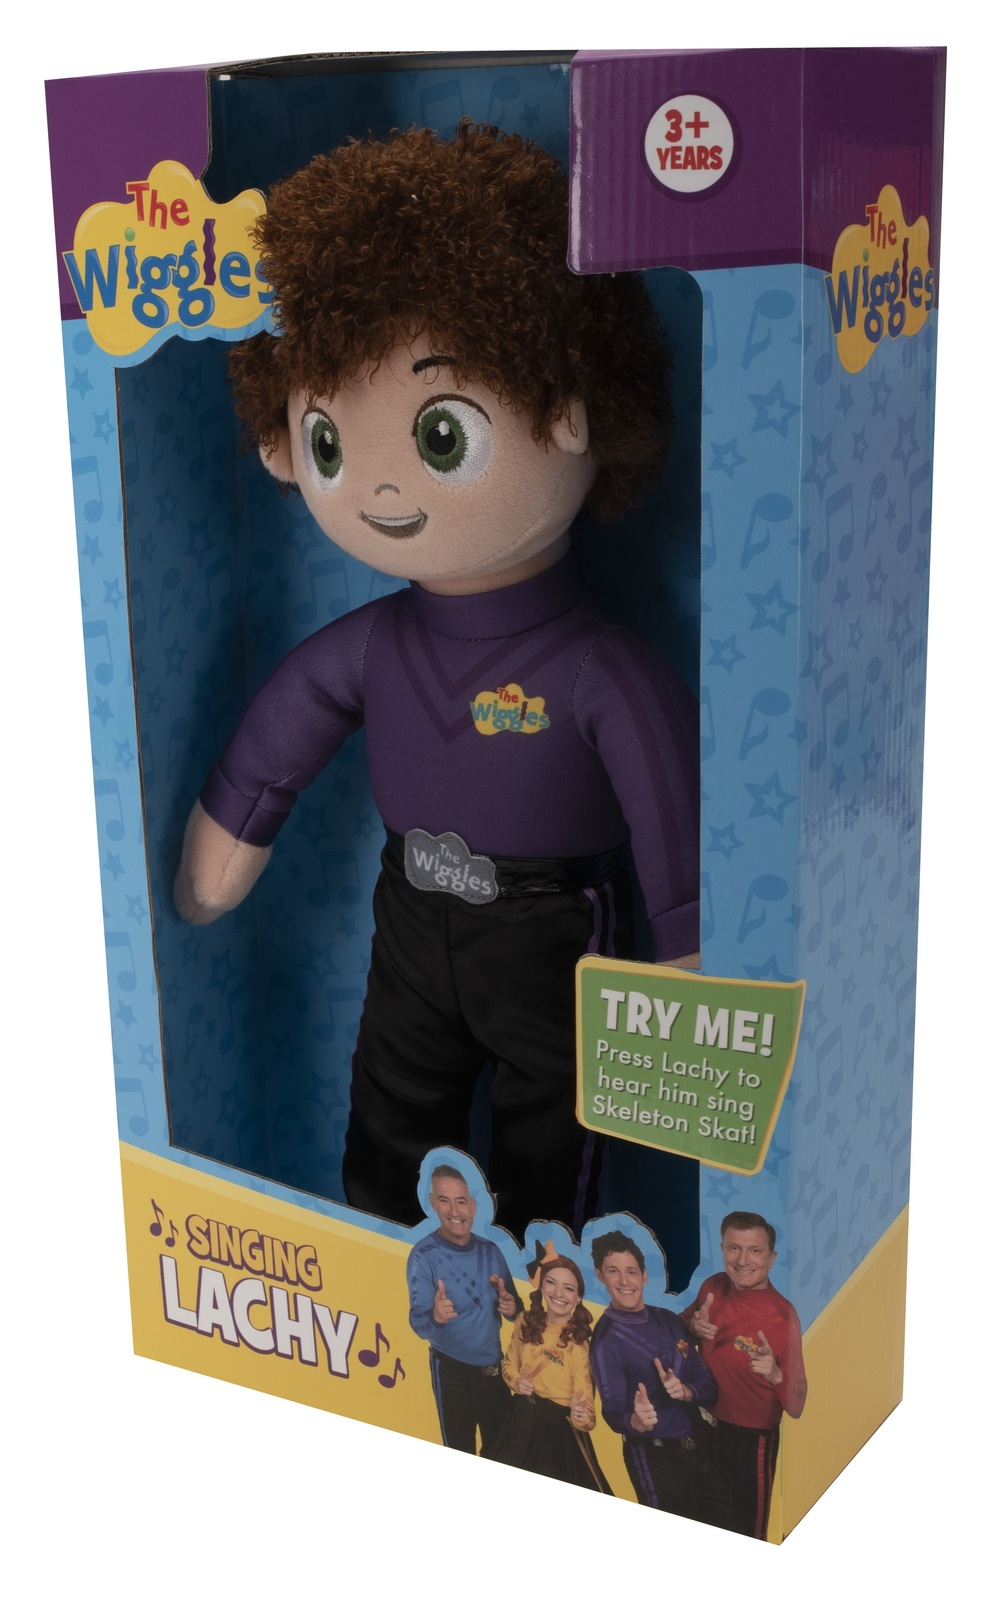 The Wiggles: Singing Plush - Lachy image